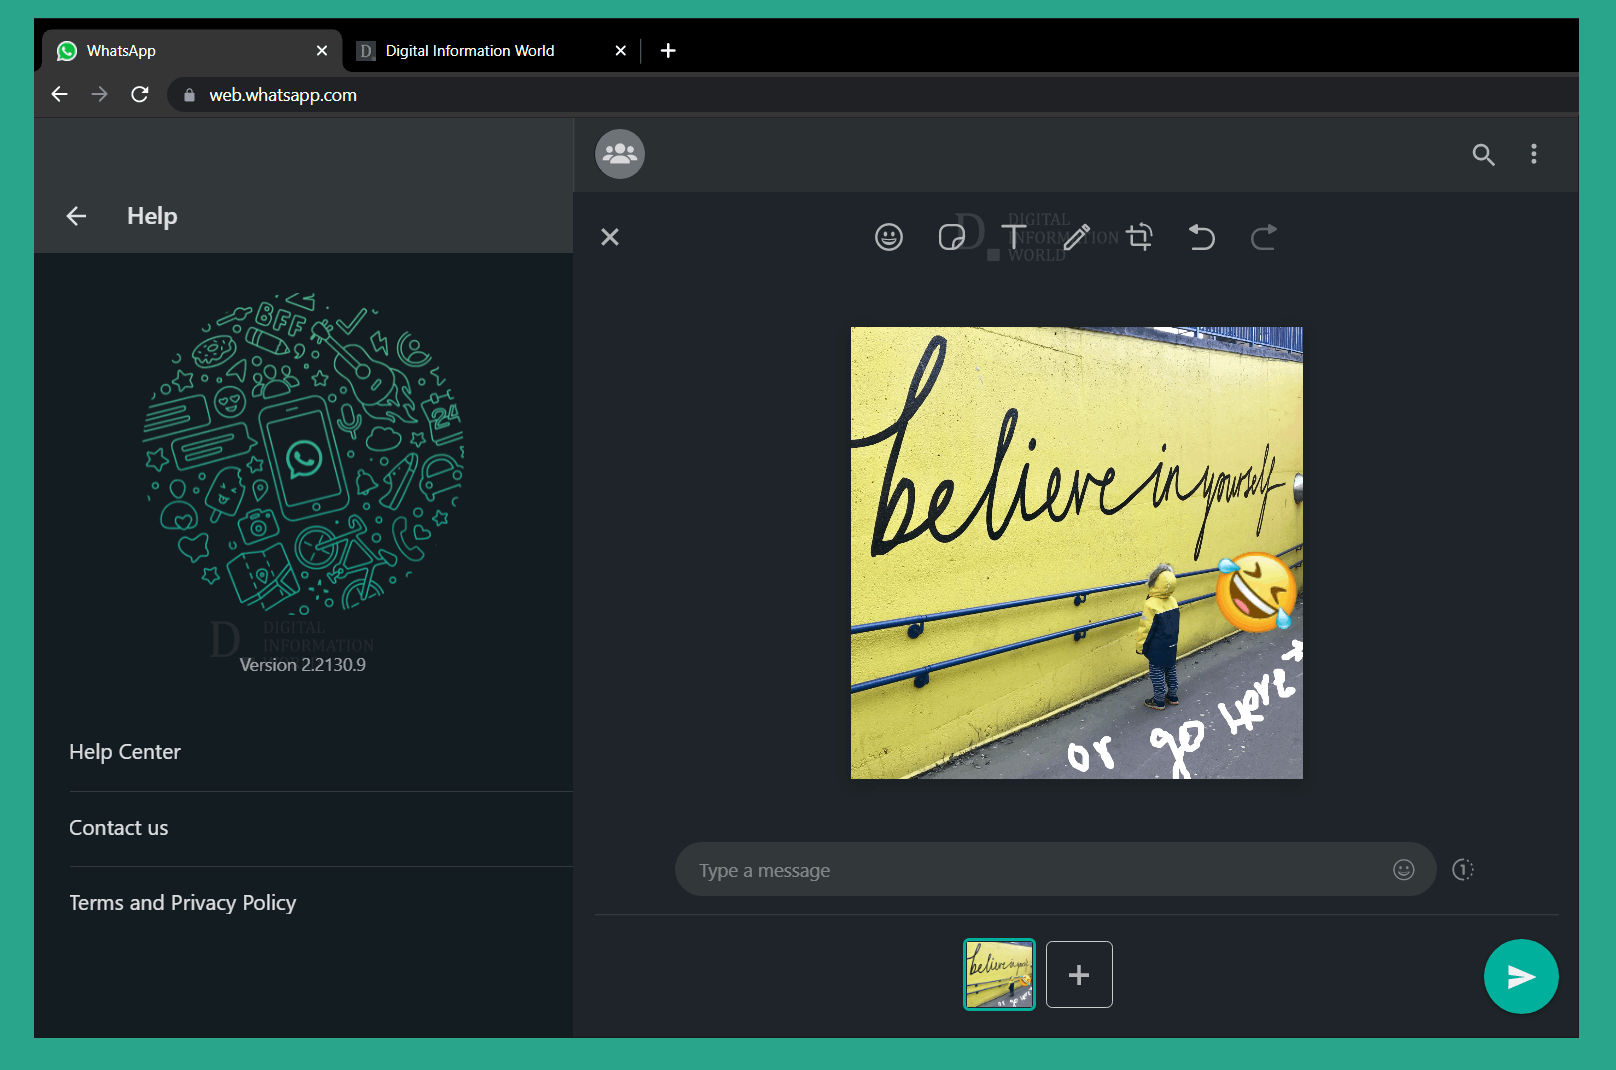 Whatsapp is rolling out its image editor on desktop devices